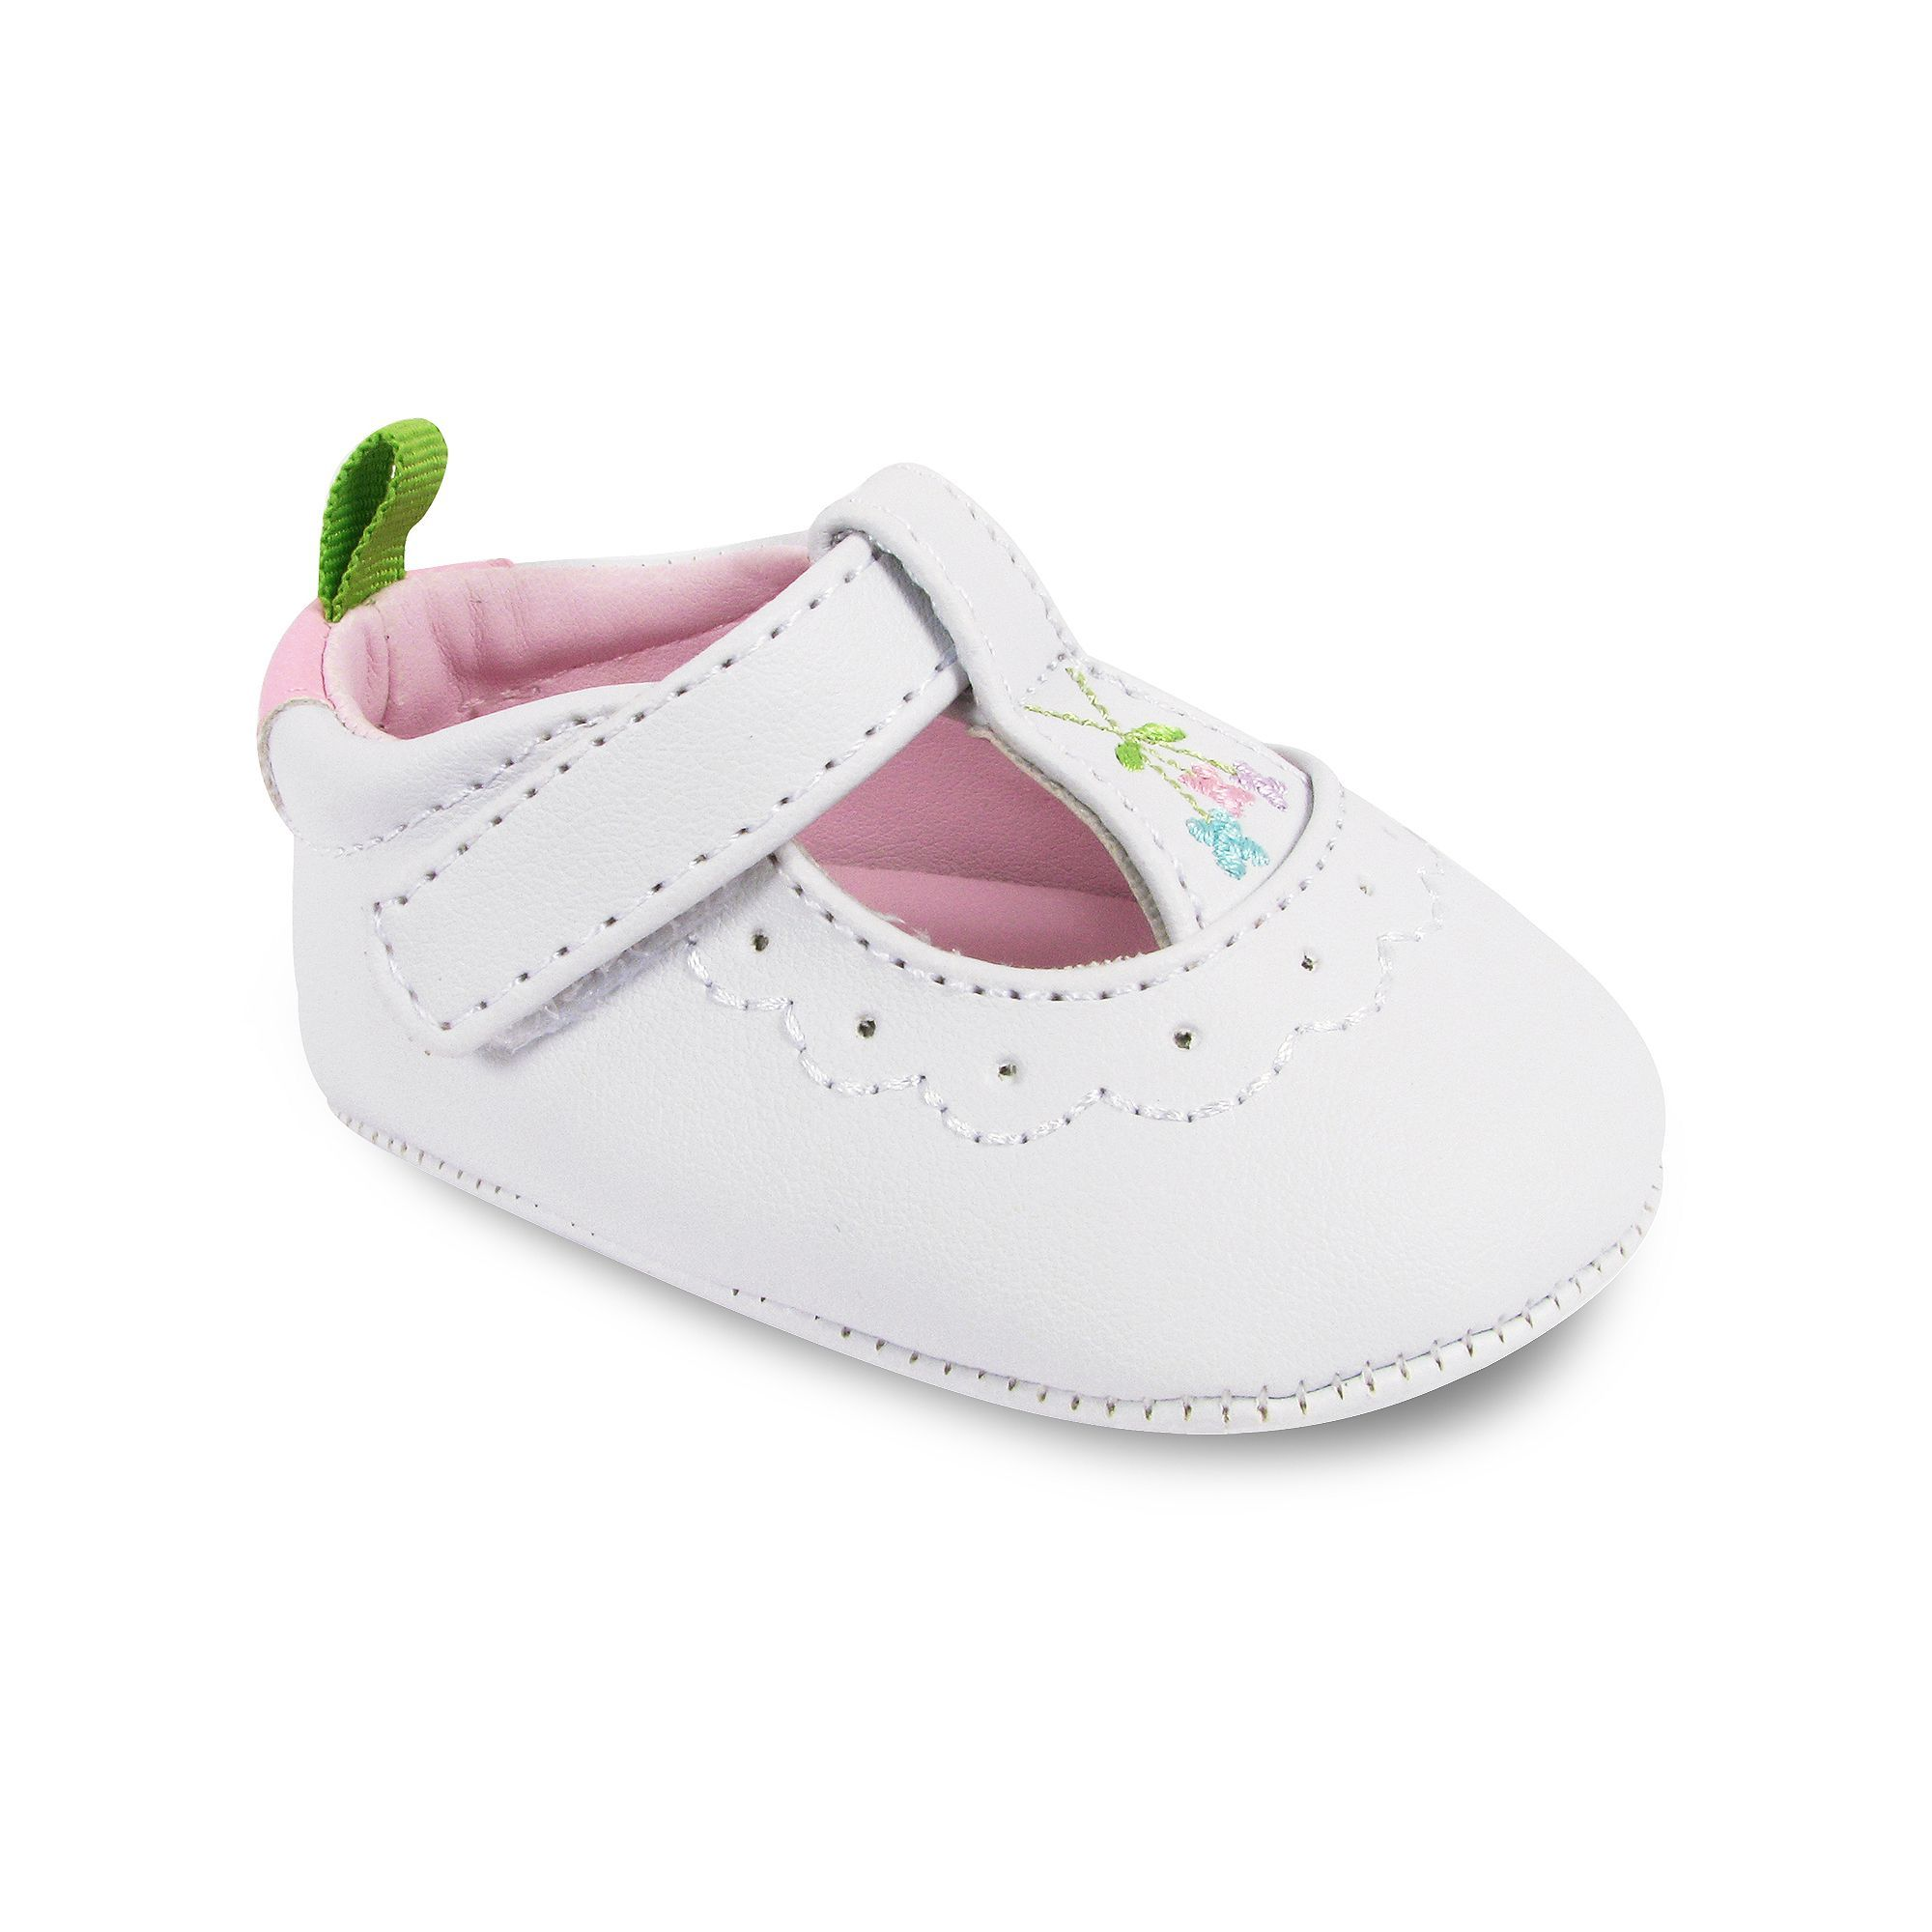 Wee Kids T Strap Crib Shoes Baby Infant Girl s Size 3 White